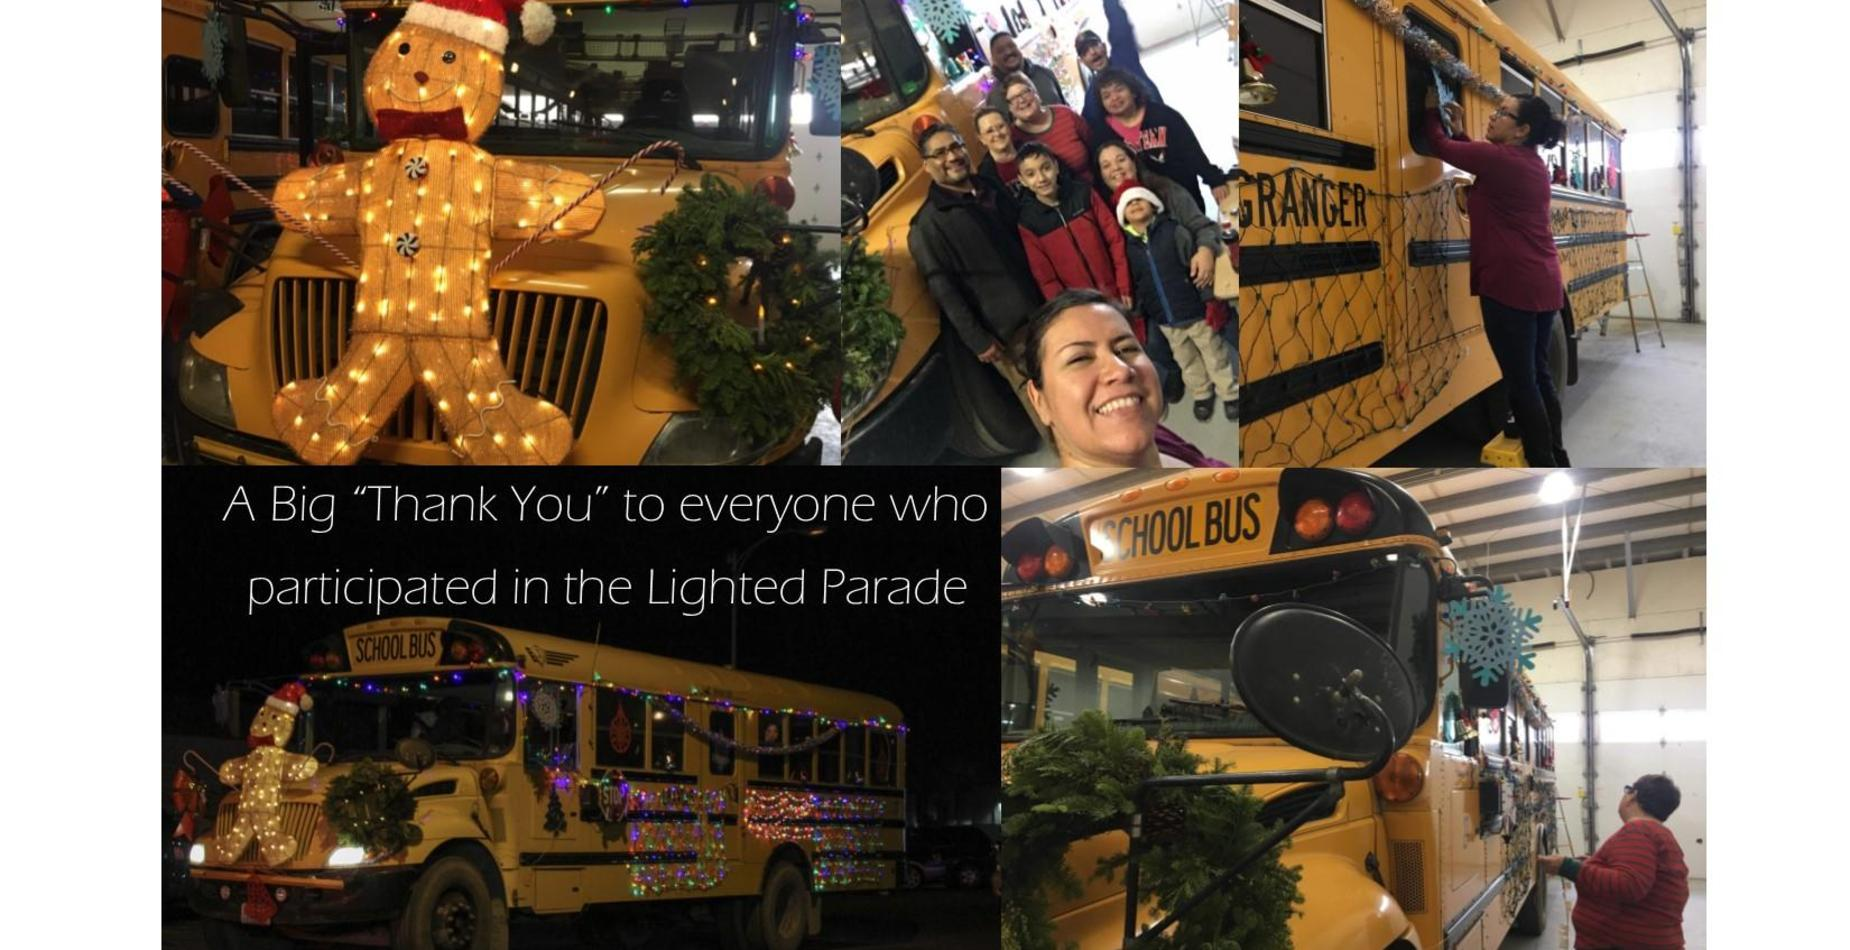 Pictures of the Lighted Parade 2018